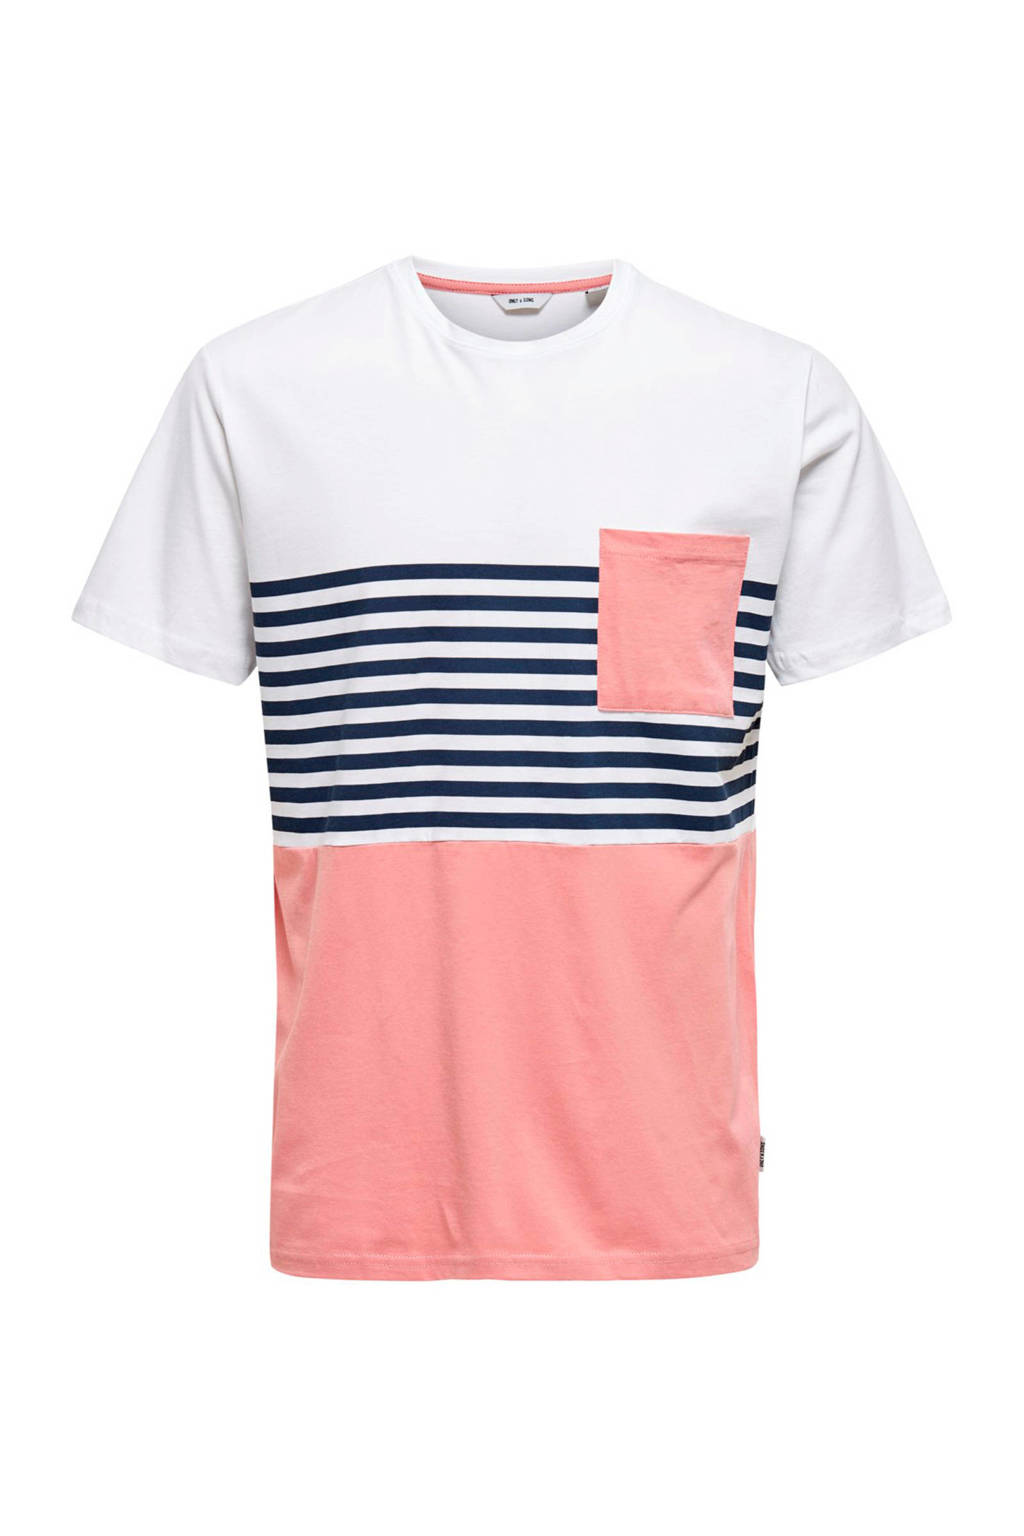 ONLY & SONS gestreept T-shirt rozw, Roze